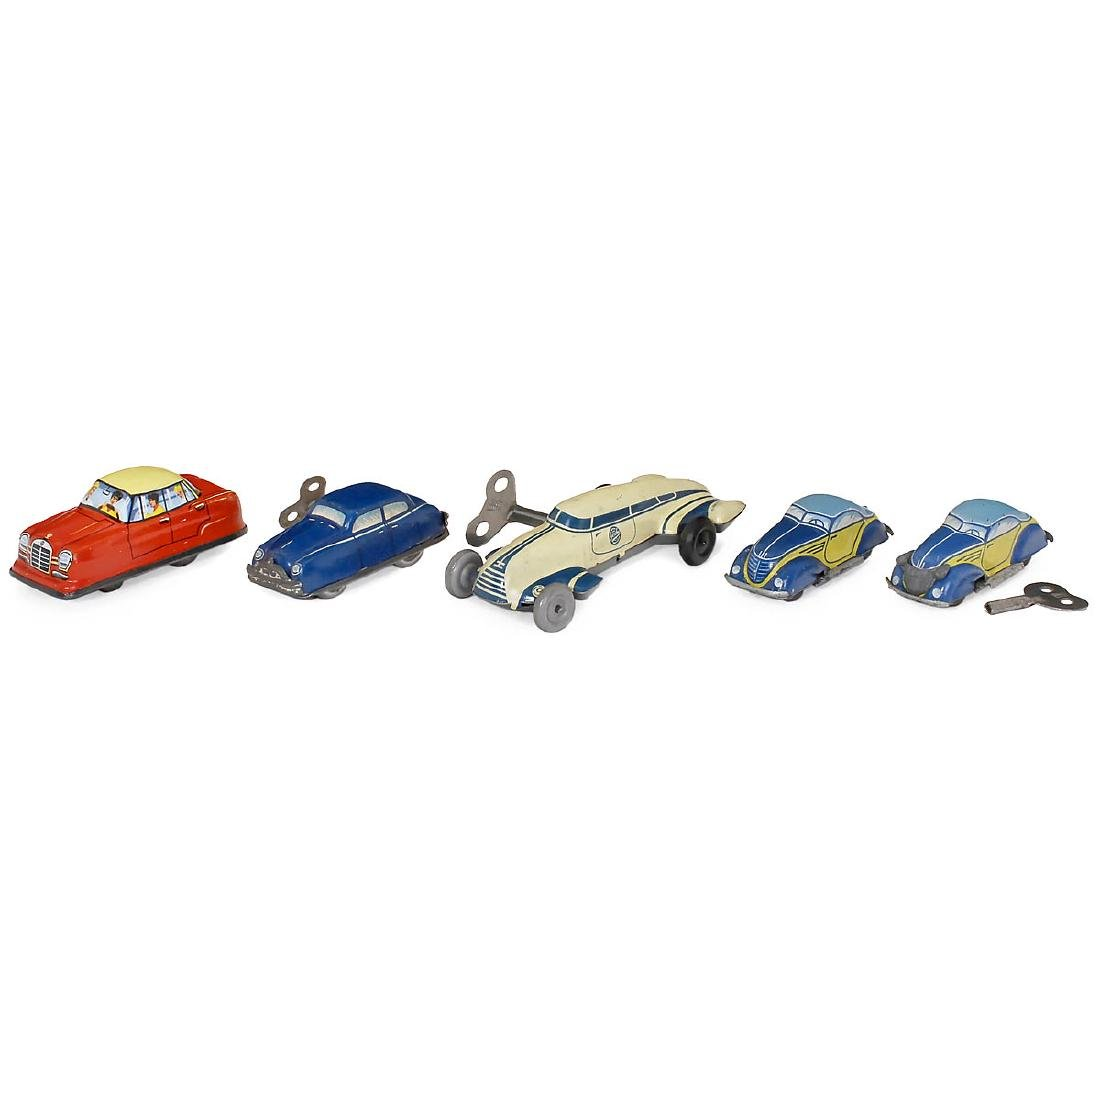 5 Small Toy Cars, c. 1950-60